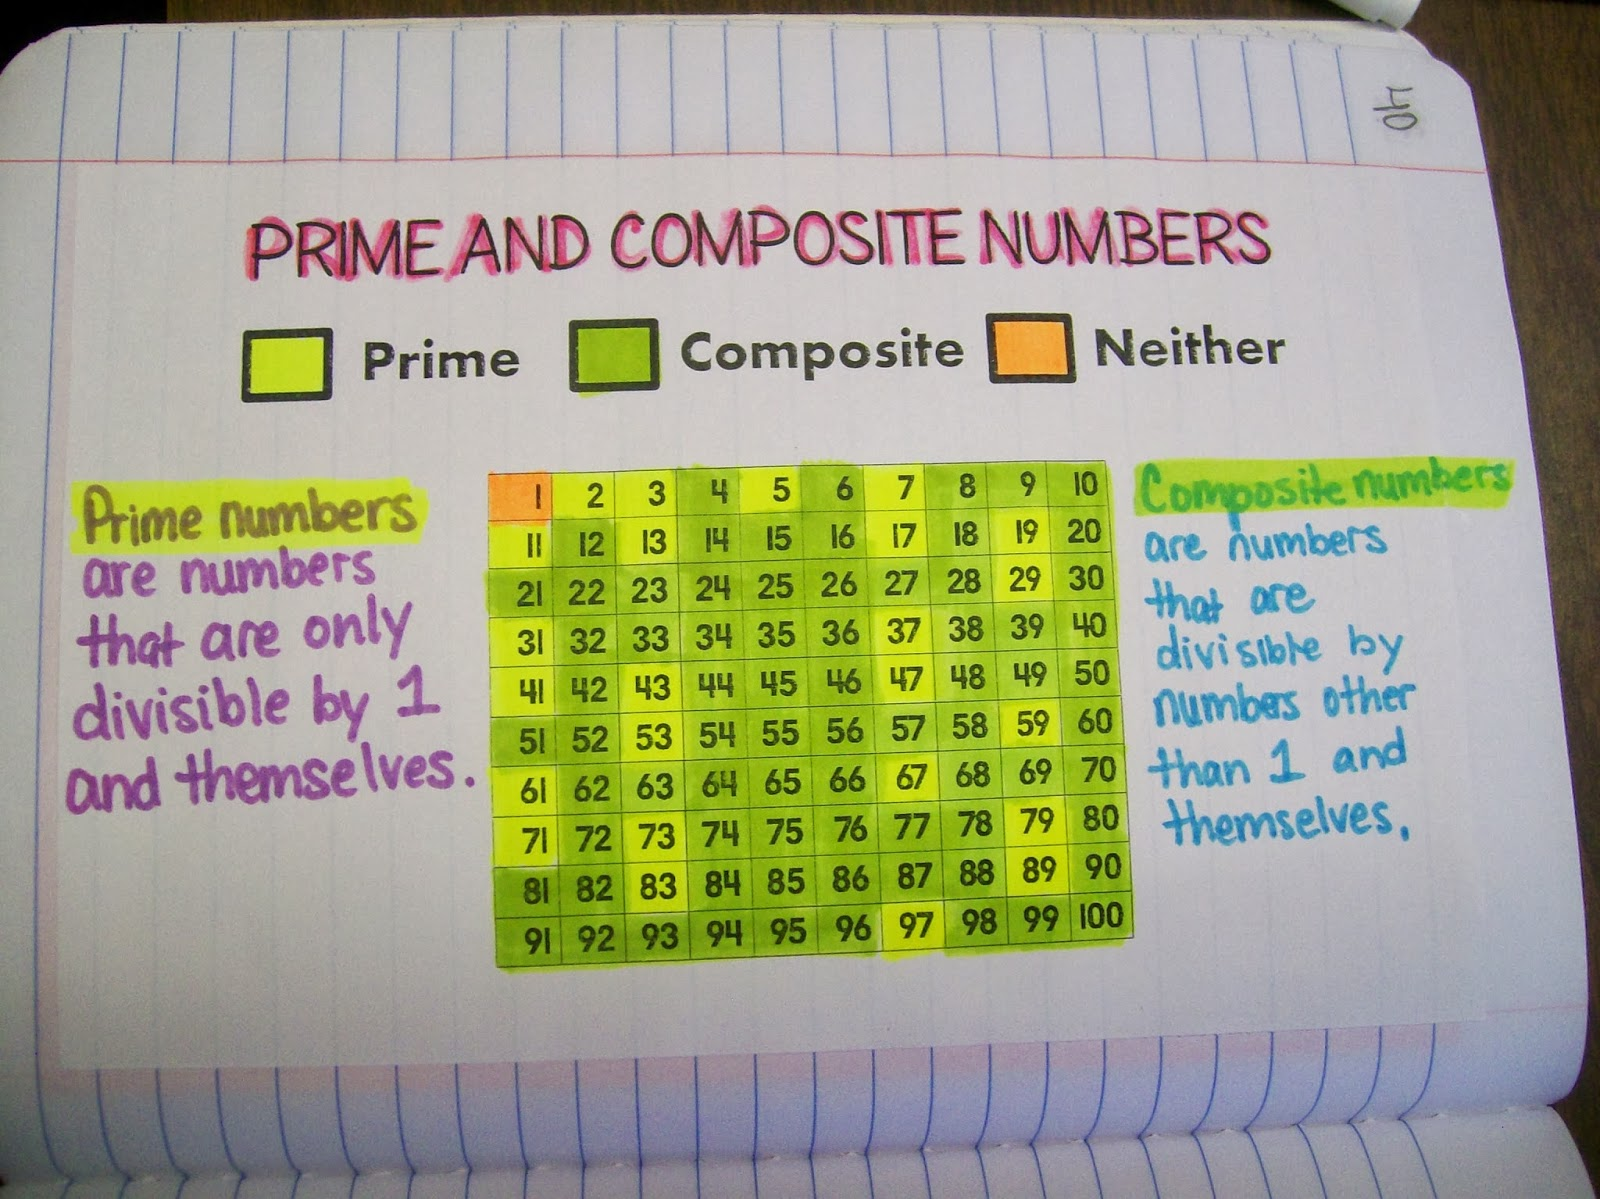 prime number You can also send the prime number list in plain text format to your own email box by provide the number range and your email box below.